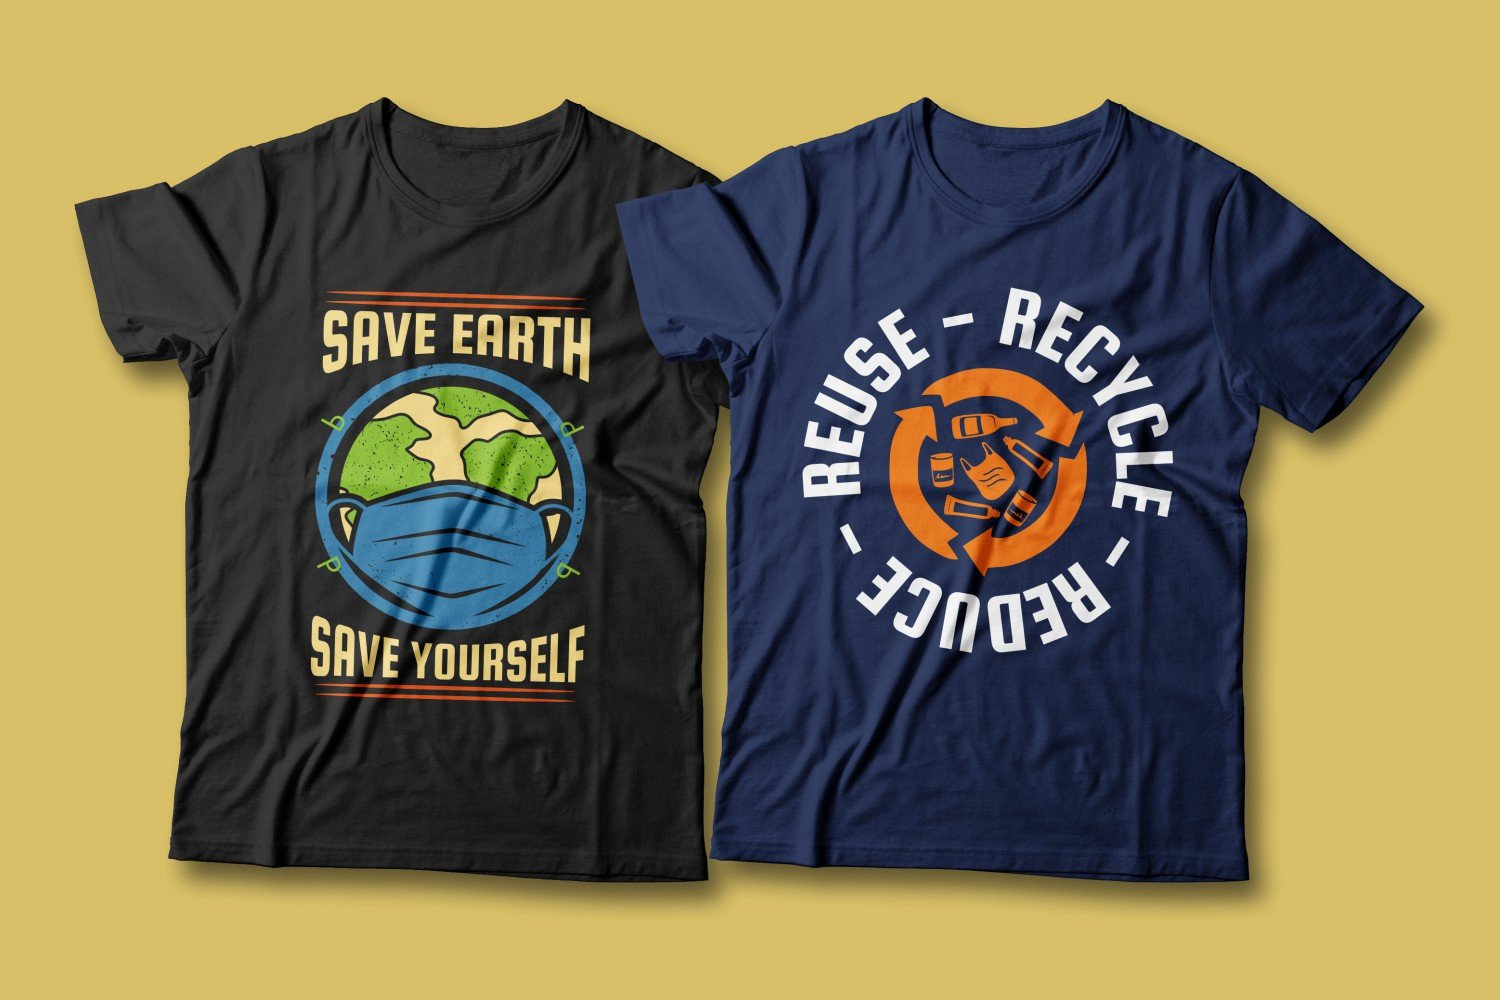 Two T-shirts - blue and black. Both are about cleansing nature from garbage.